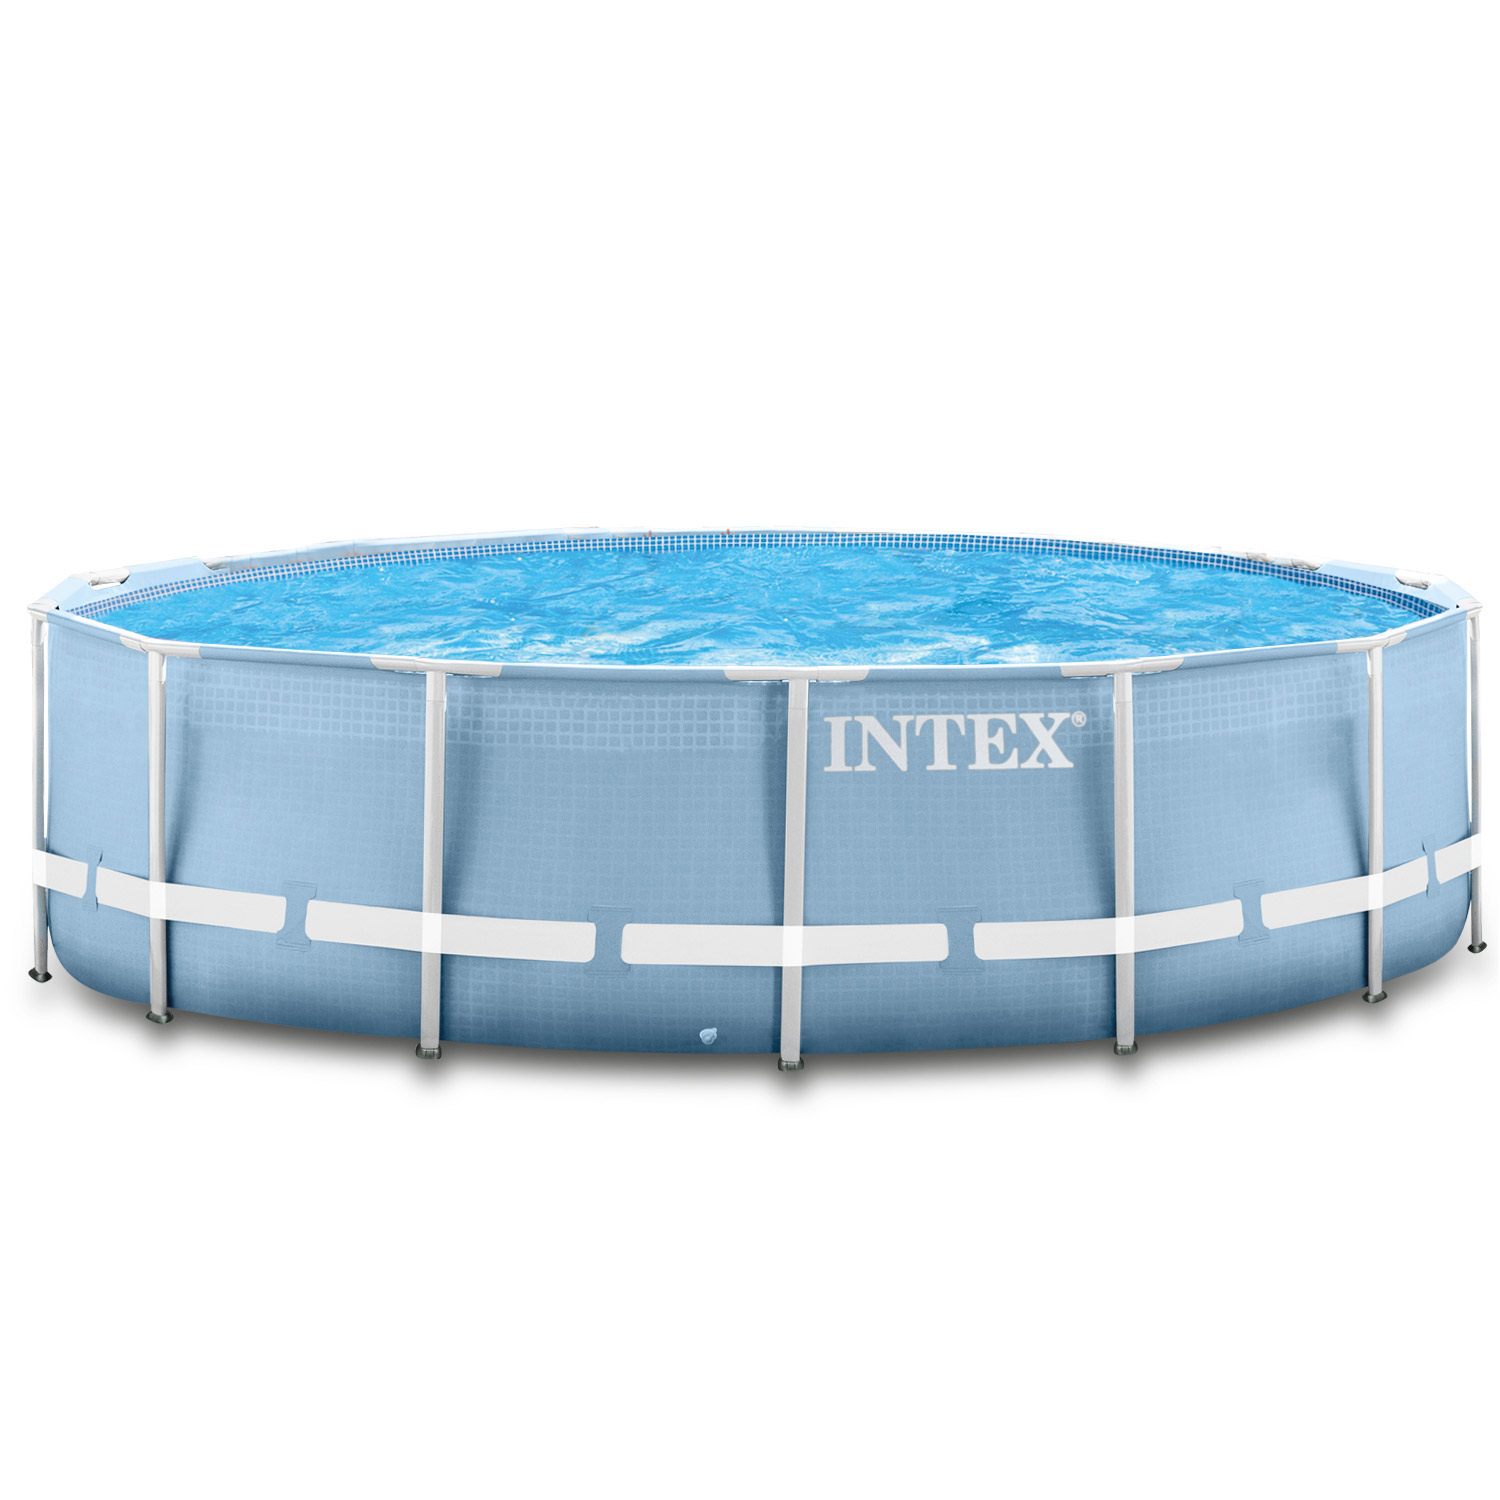 Intex swimming pool frame 457x122 cm mit pumpe leiter for Pool 457x122 mit sandfilteranlage